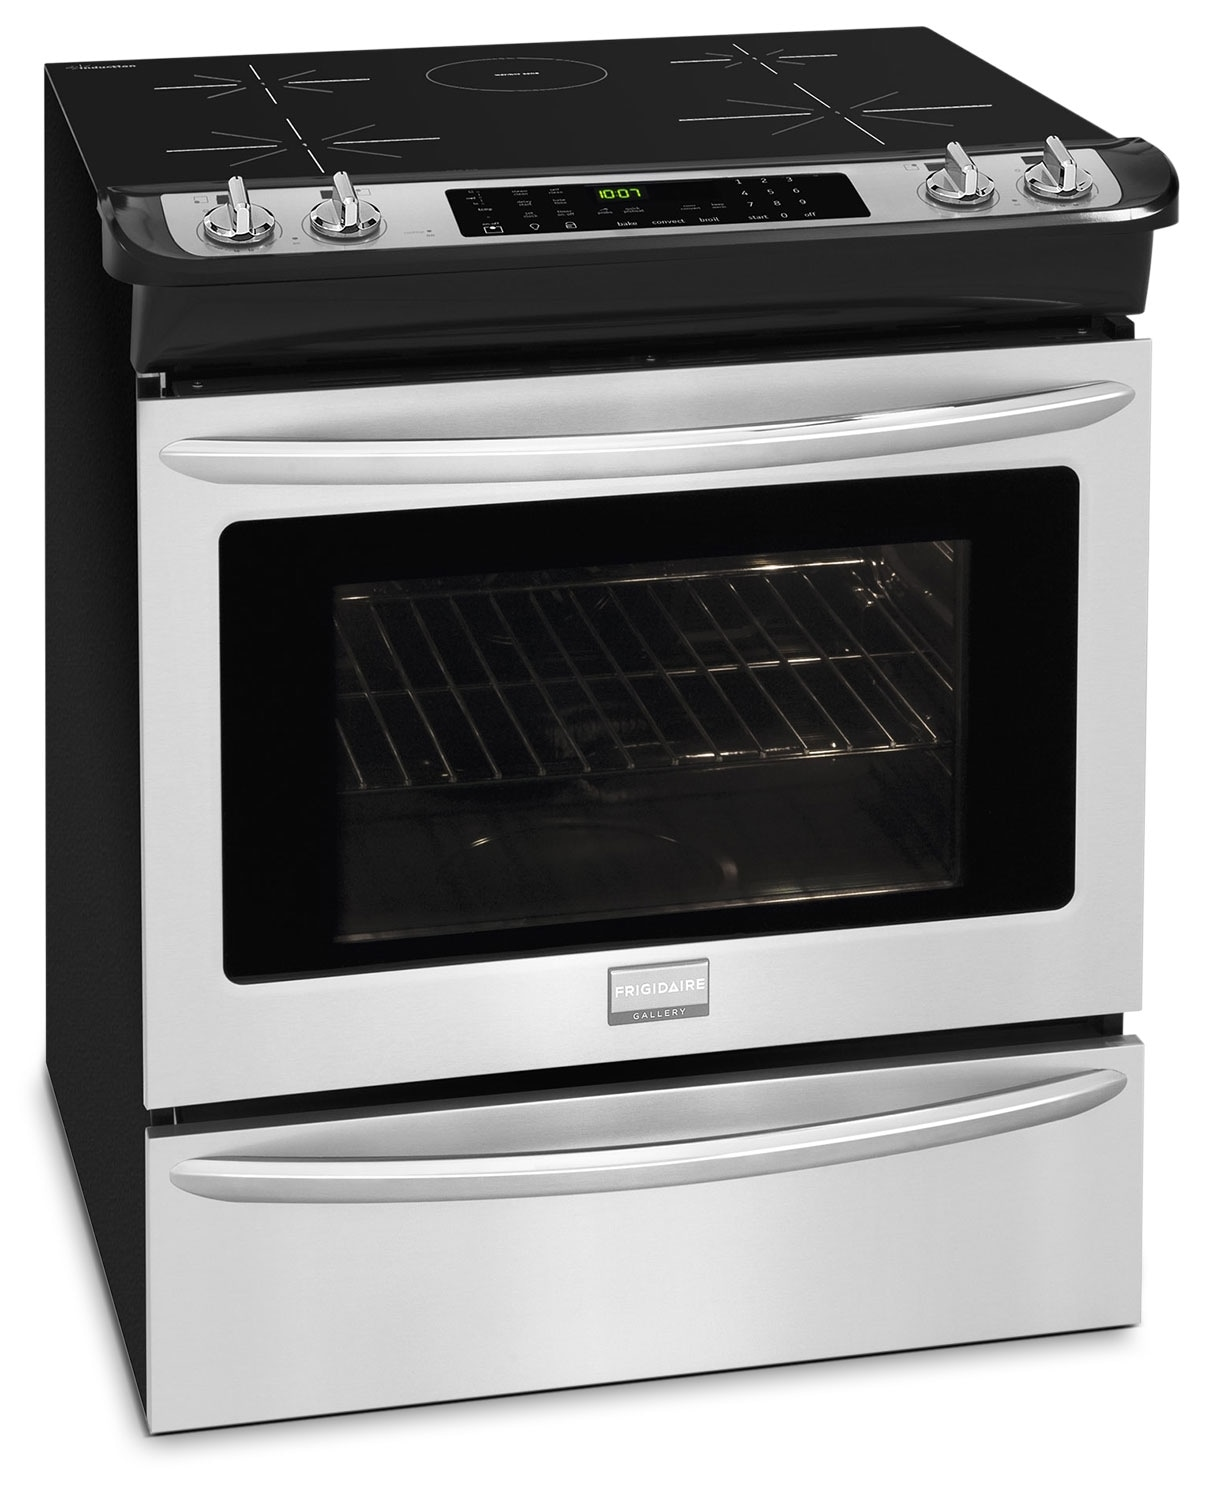 Uncategorized Kitchen Appliances Canada frigidaire appliances leons gallery stainless steel slide in induction range 4 6 cu ft